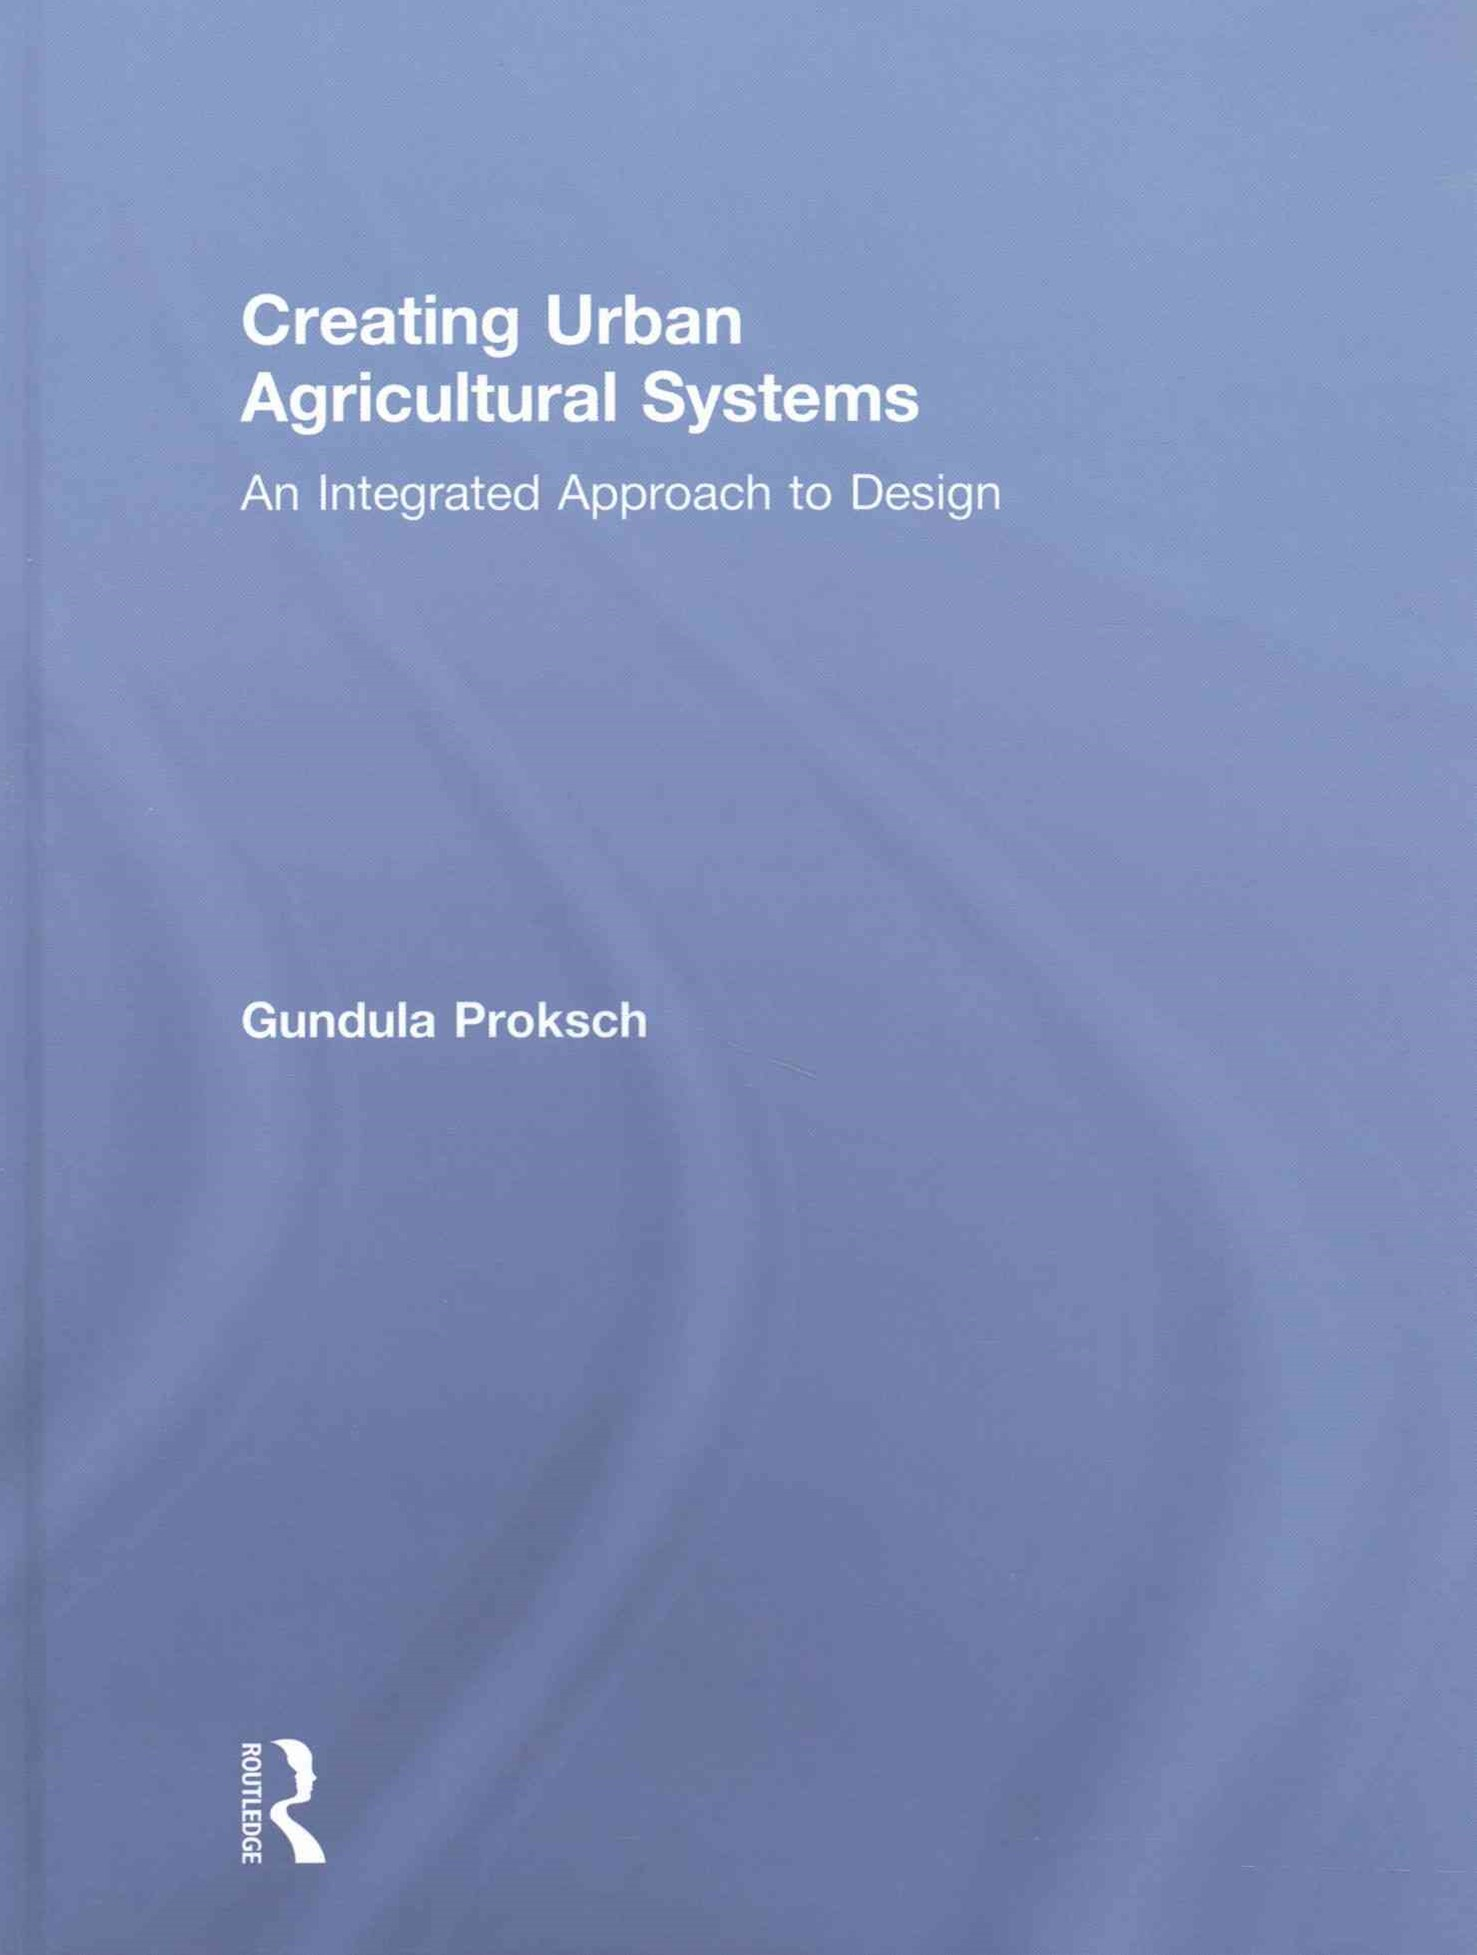 Creating Urban Agriculture Systems